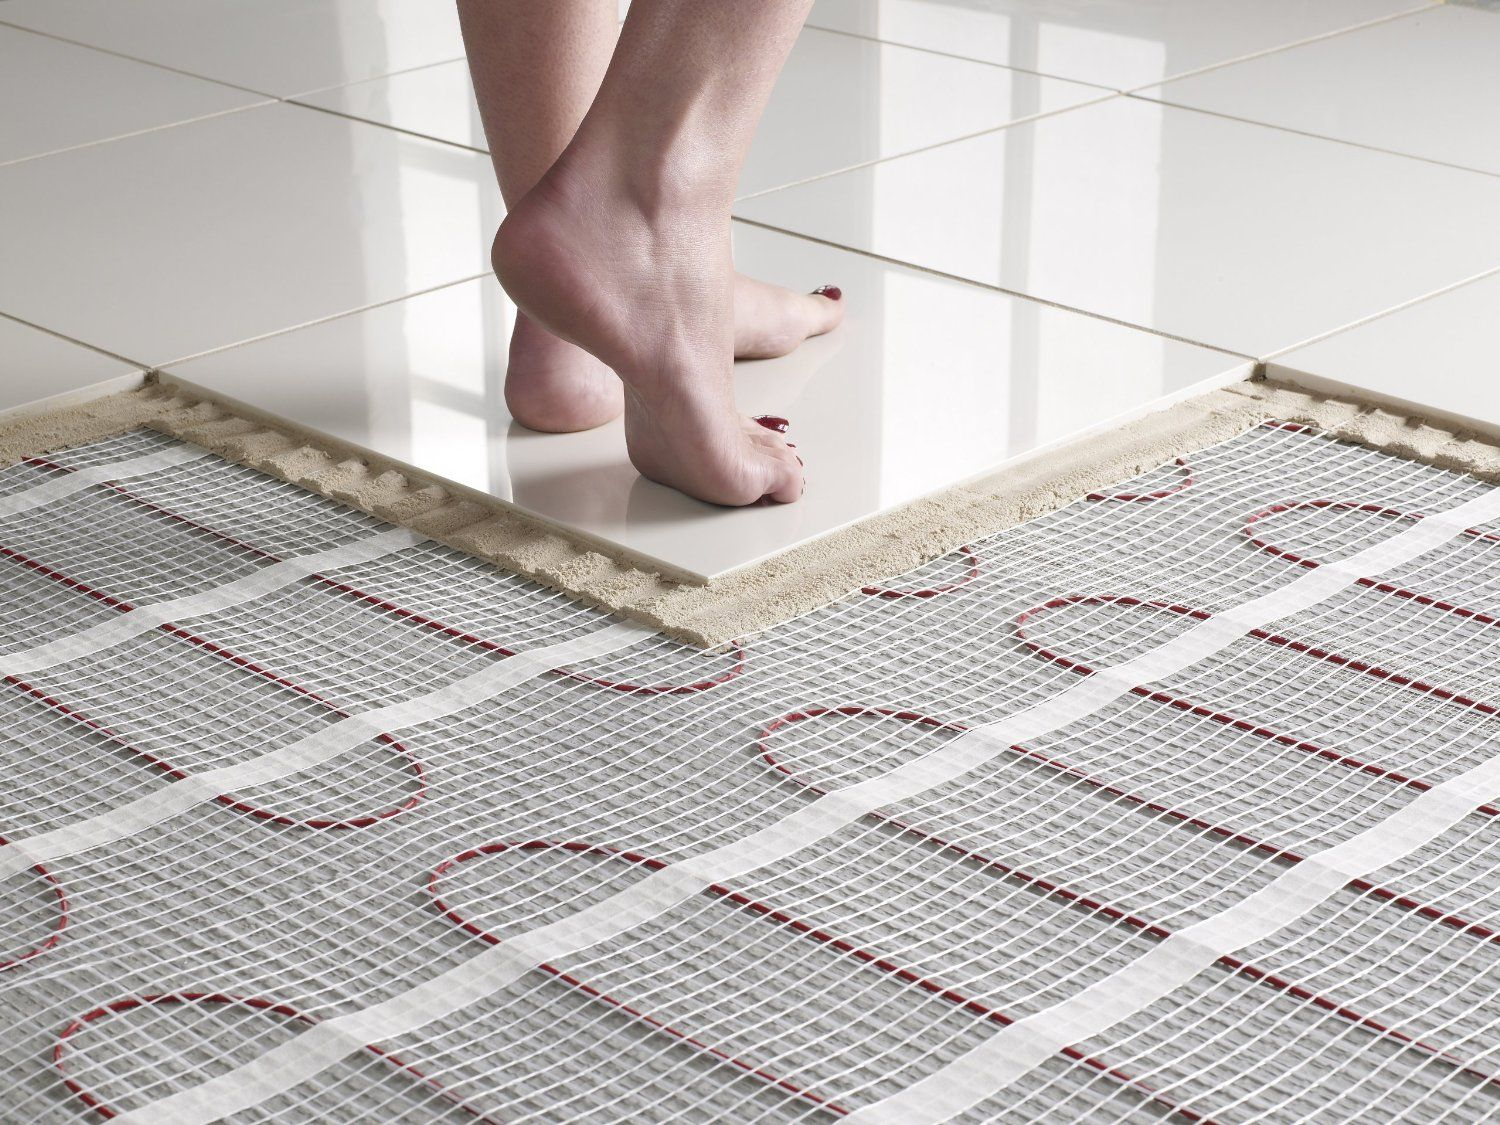 Heated Flooring Is A Must In A Luxury Bathroom Underfloor Heating Advantages And Disadvantages In 2020 Heated Floors Radiant Floor Heating Radiant Floor